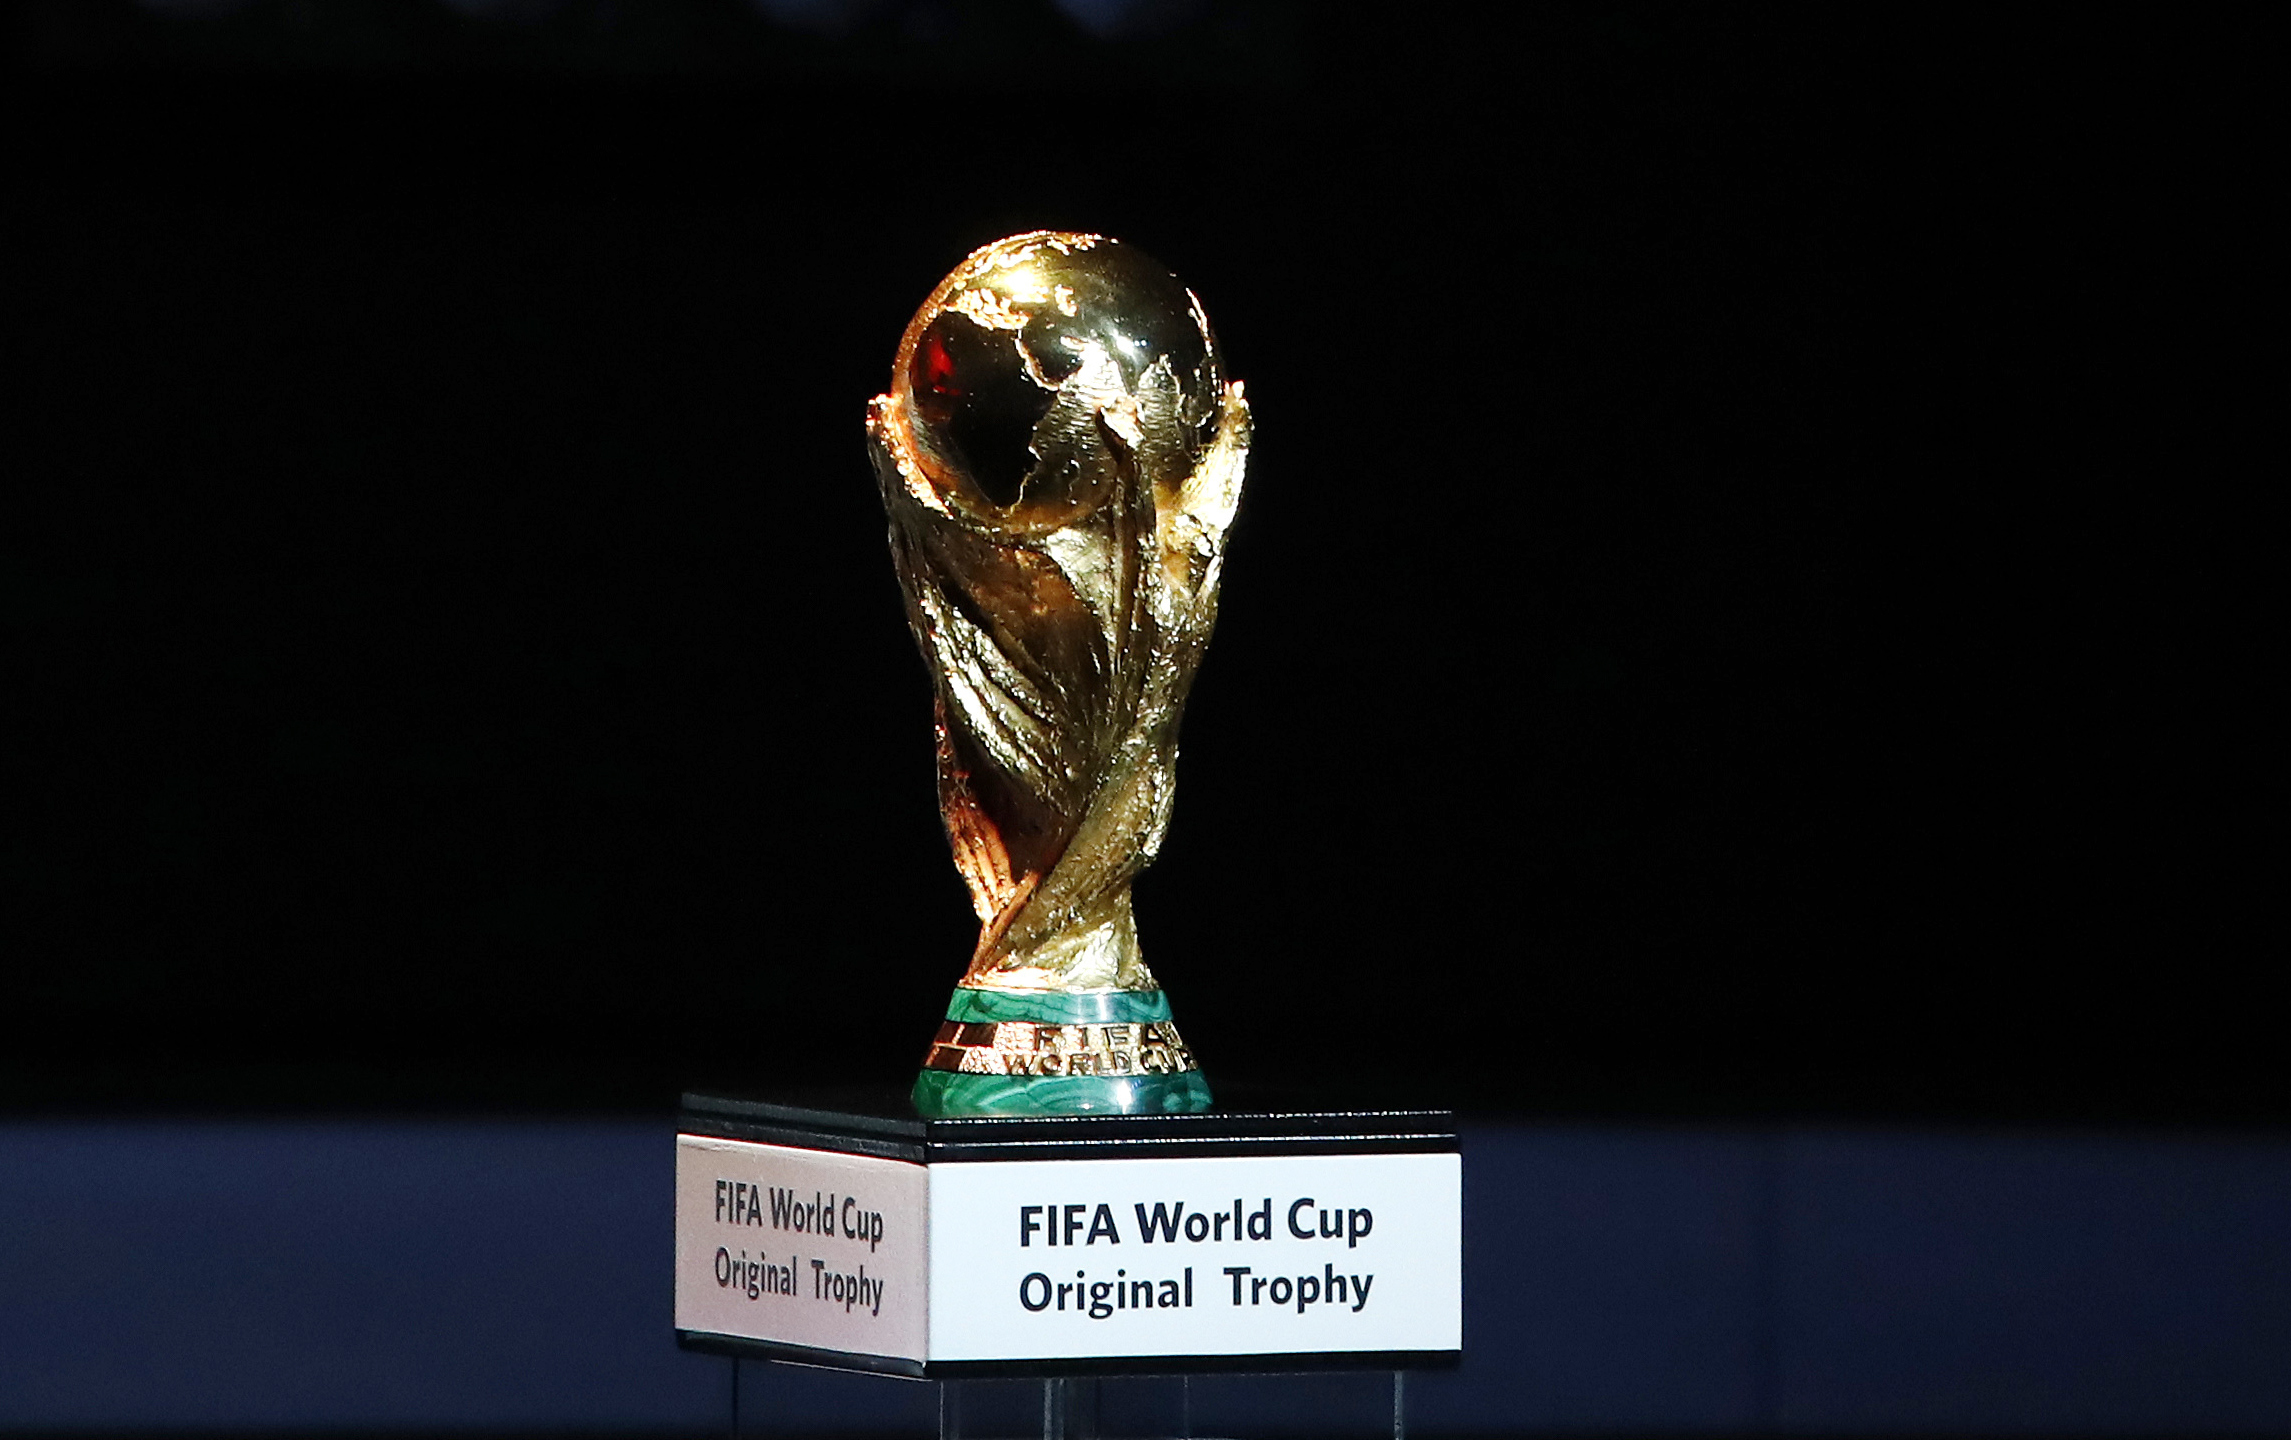 Russia 2026 World Cup Bidding_1522083790491-846624080